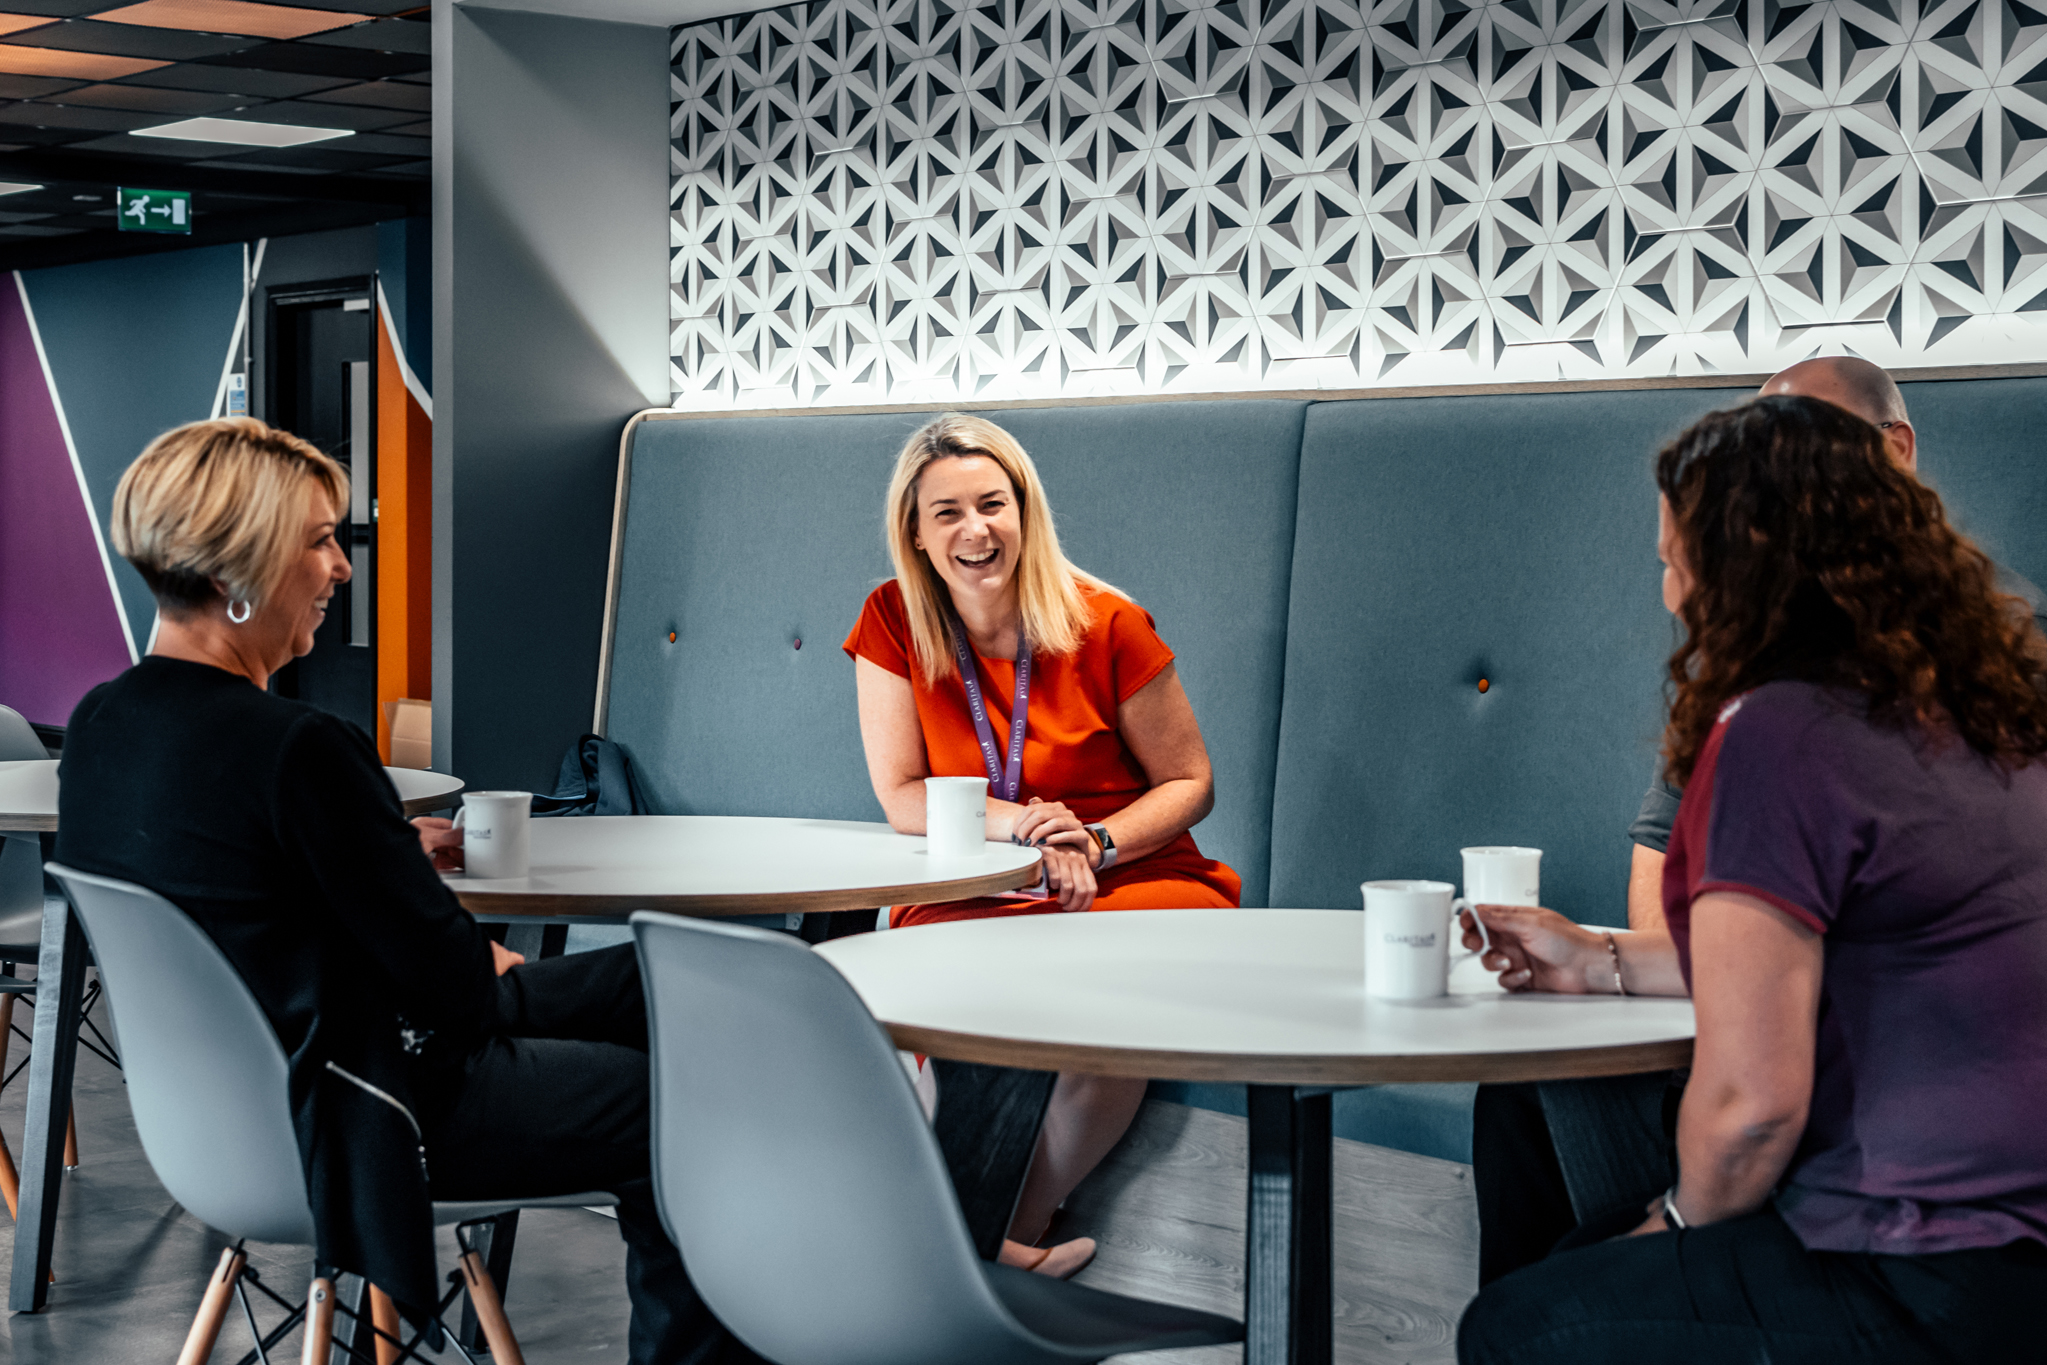 Breakout Area for Claritas Solutions by Absolute Commercial Interiors